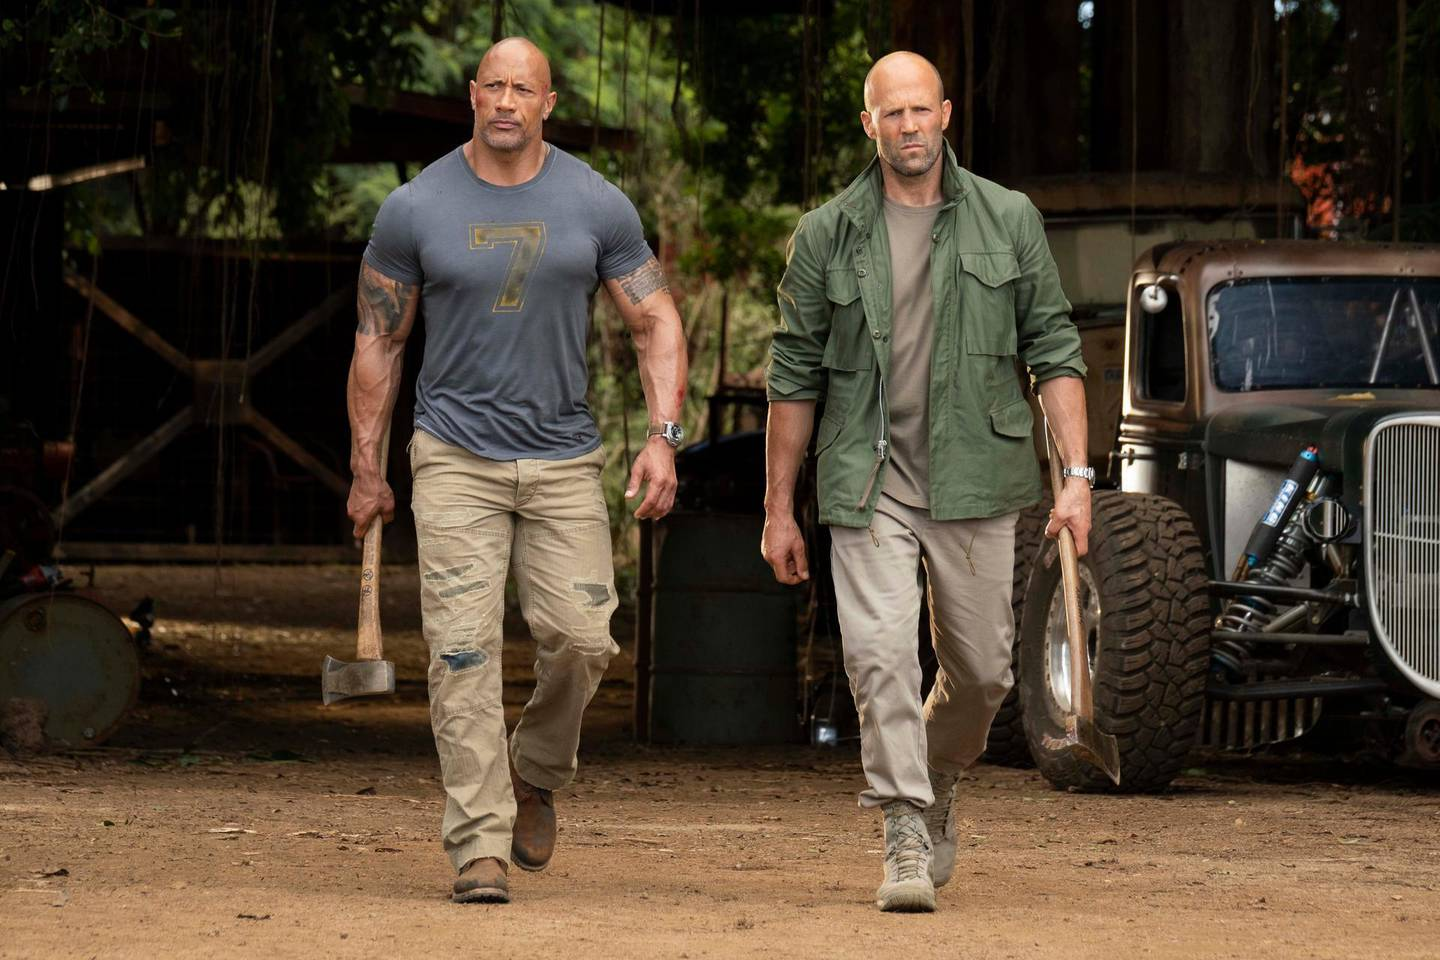 """(from left) Luke Hobbs (Dwayne Johnson) and Deckard Shaw (Jason Statham) in """"Fast & Furious Presents: Hobbs & Shaw,"""" directed by David Leitch. Courtesy Universal Pictures"""